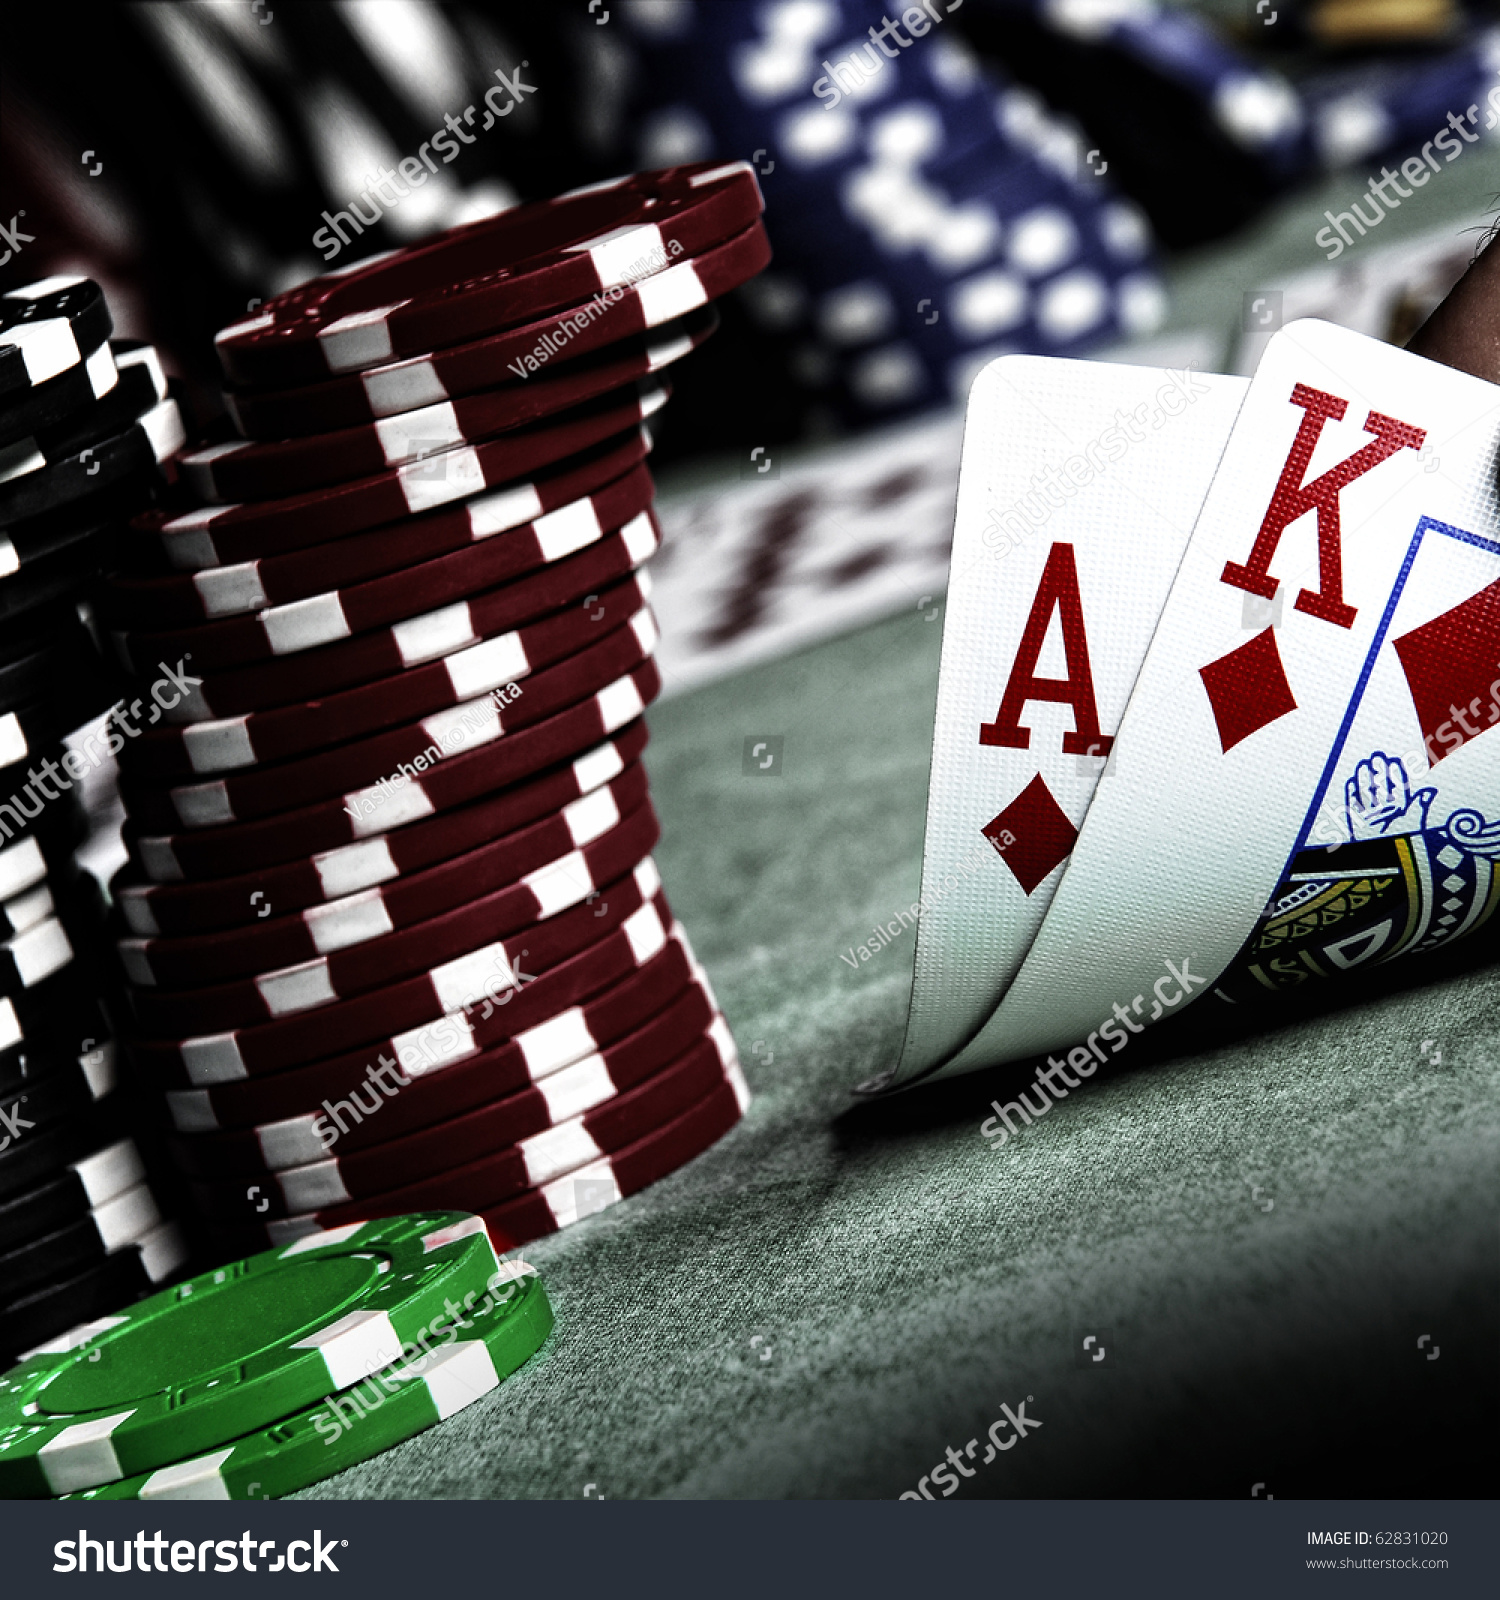 Ace King Poker Chips Stack Stock Photo (Royalty Free) 62831020 ...